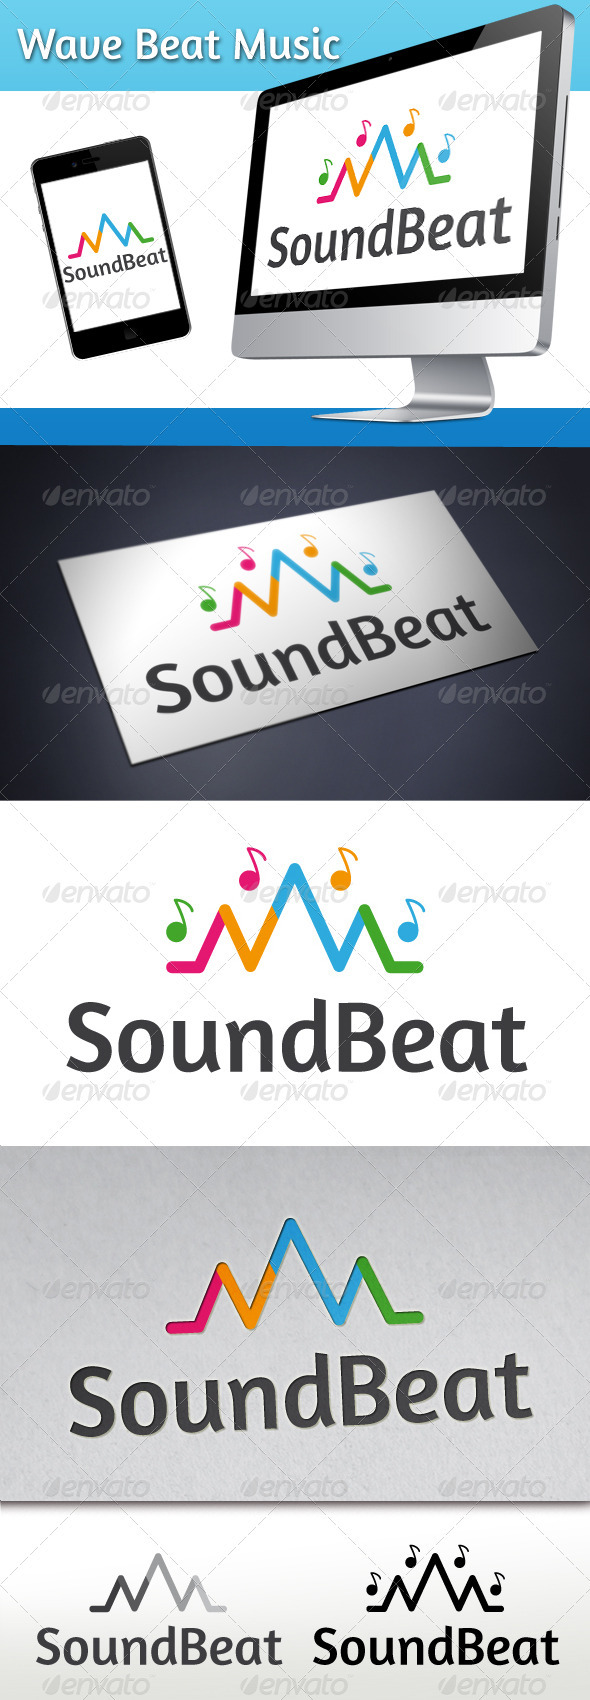 GraphicRiver Wave Beat Music Logo 3373359